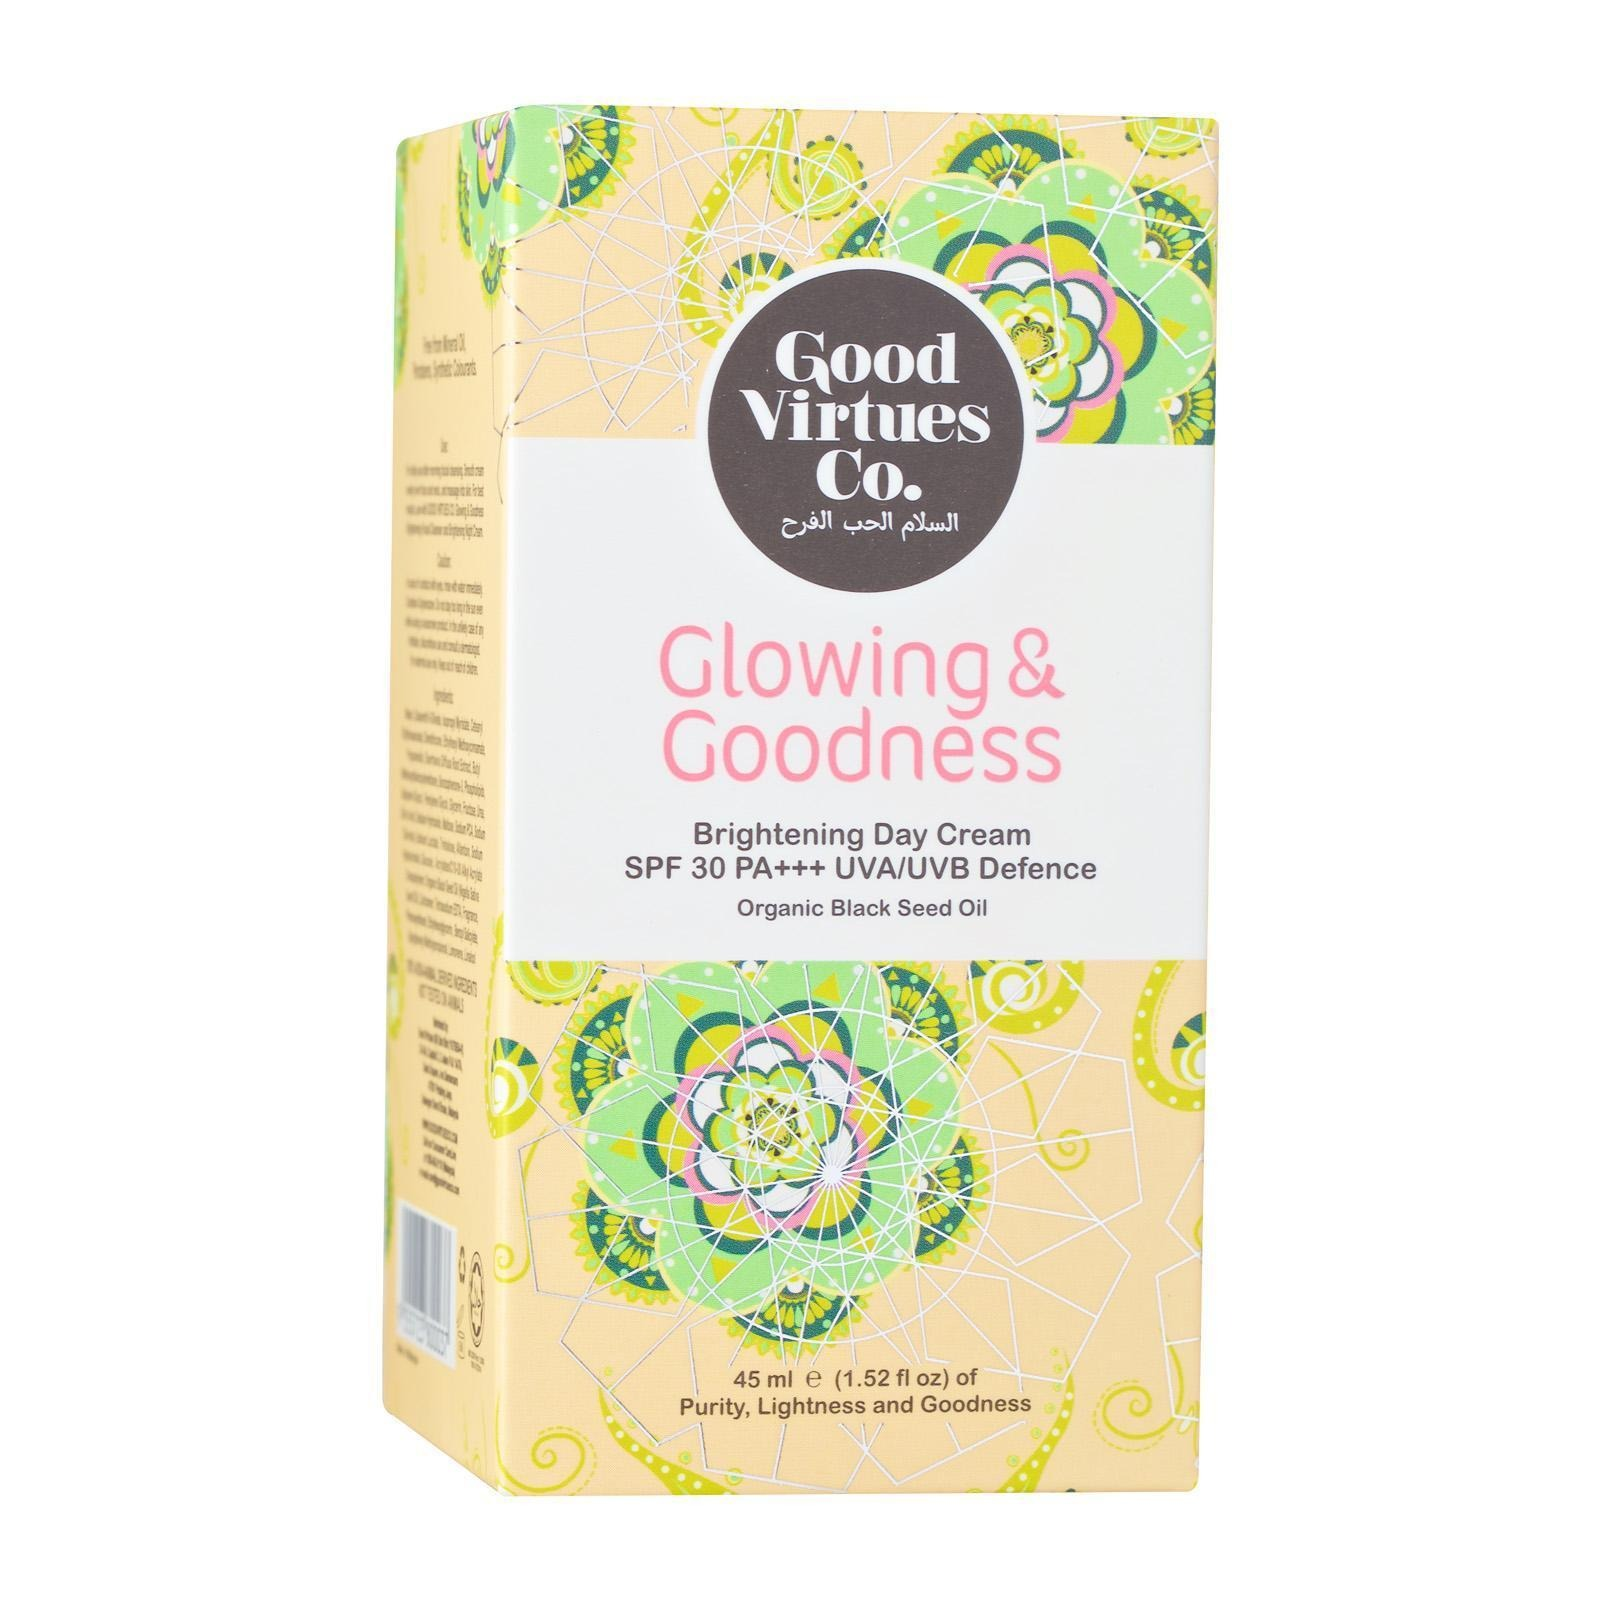 Good Virtues Co. Glowing And Goodness Brightening Day Cream